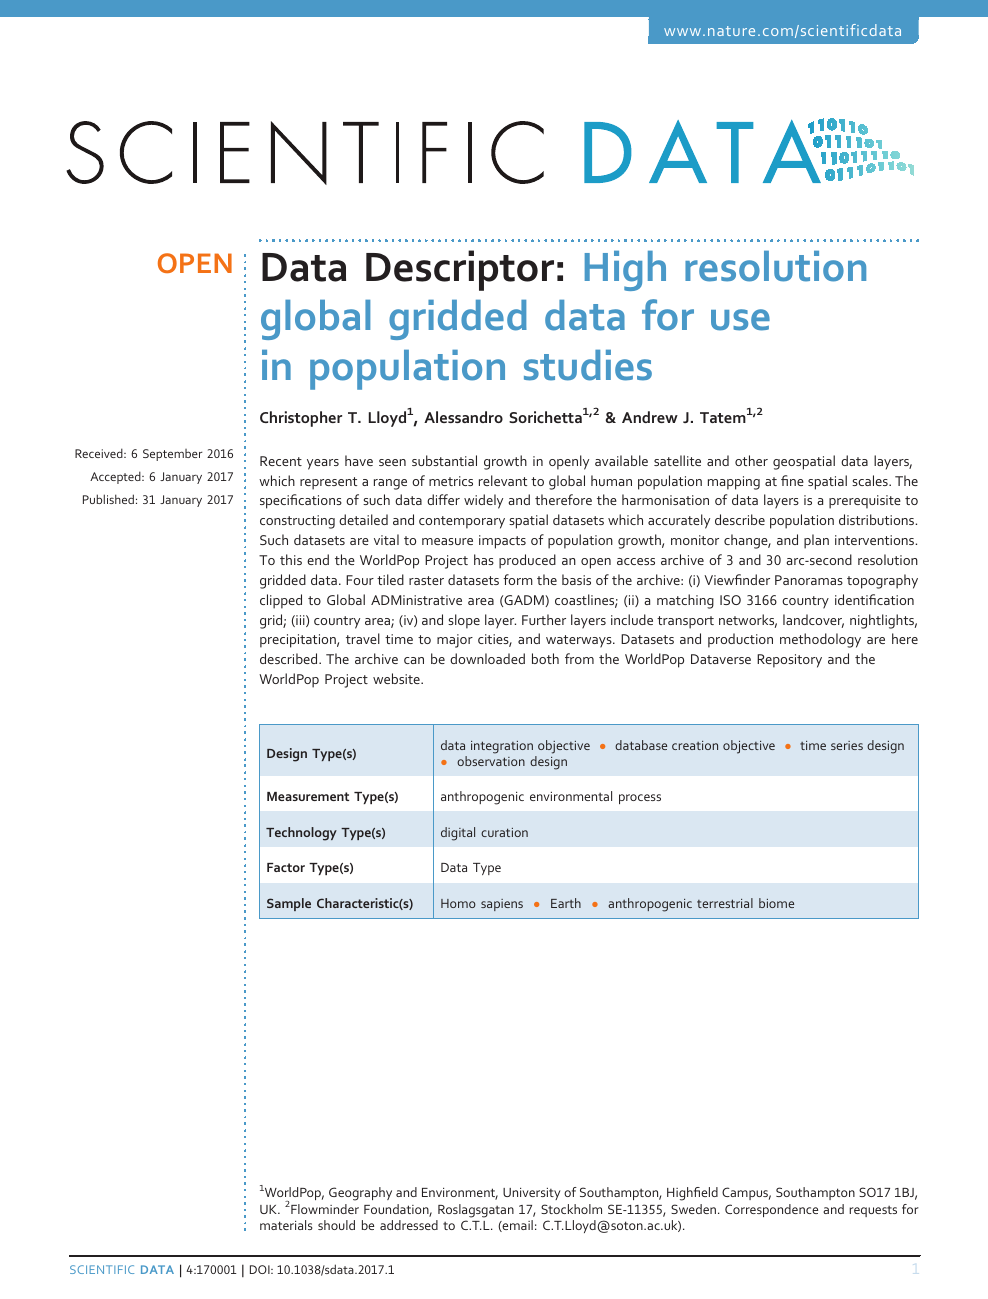 High Resolution Global Gridded Data For Use In Population Studies Topic Of Research Paper In Earth And Related Environmental Sciences Download Scholarly Article Pdf And Read For Free On Cyberleninka Open